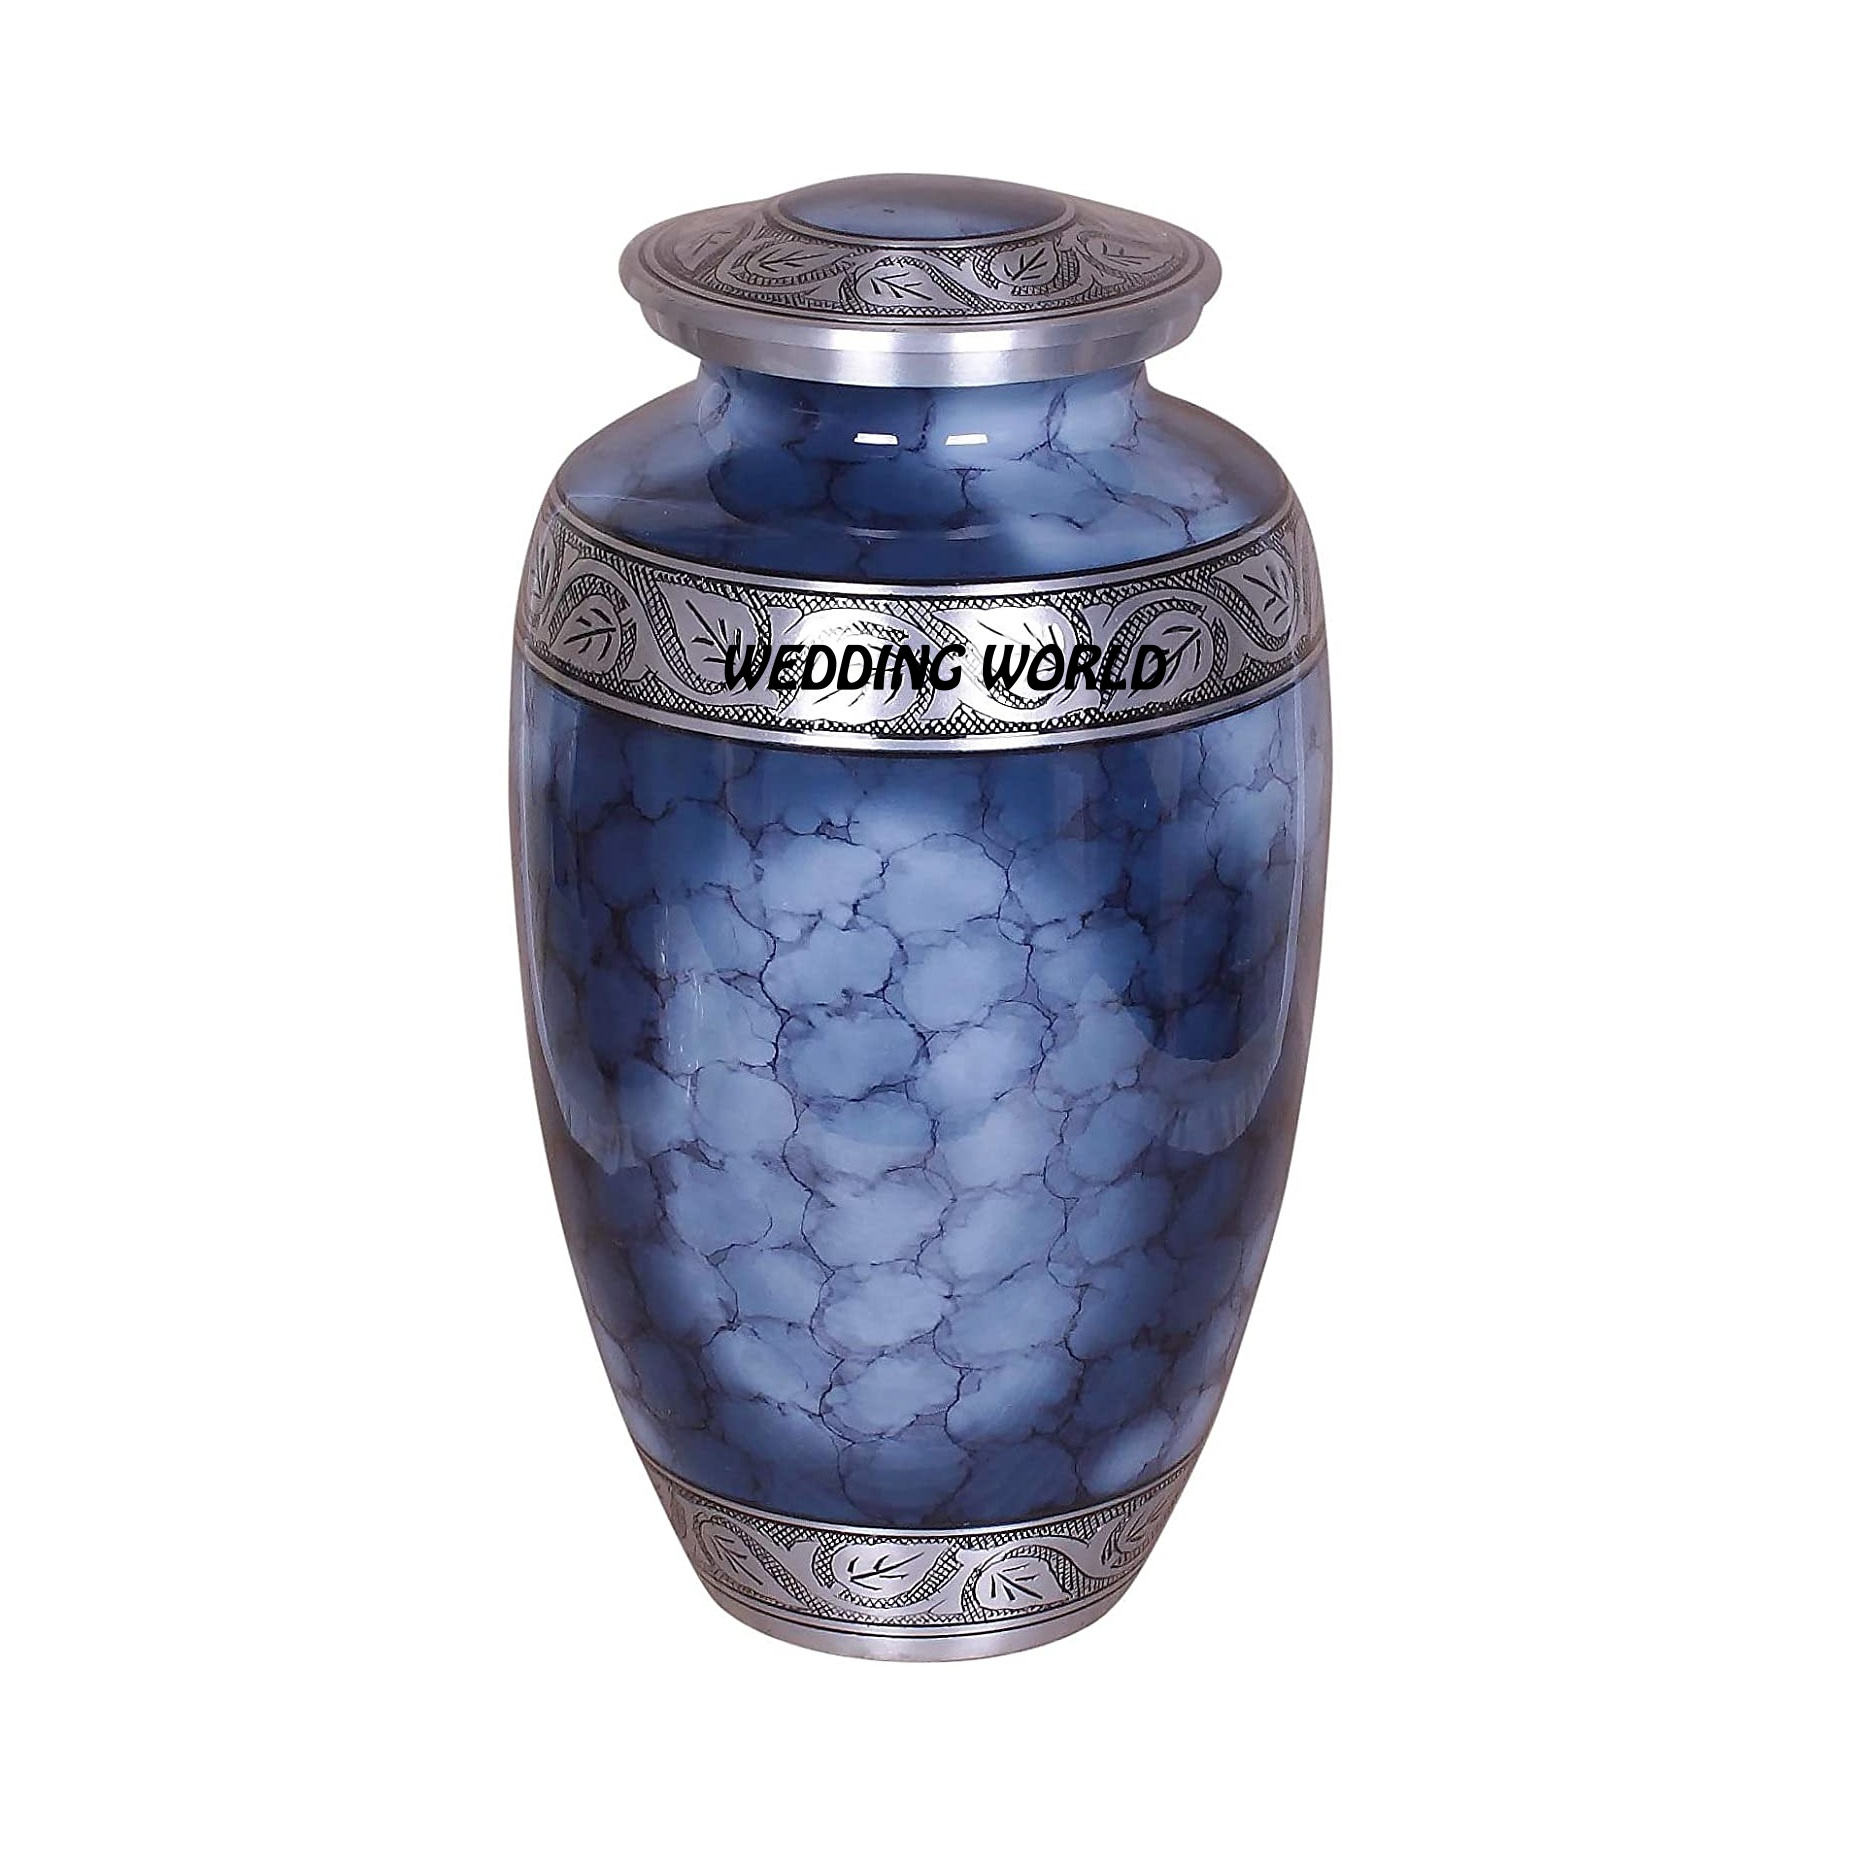 Blue Cremation Urn Wholesale Metal Pet Keepsake Cremation Urns Cheap Shipping Containers India Brass Cremation Urns For Sale